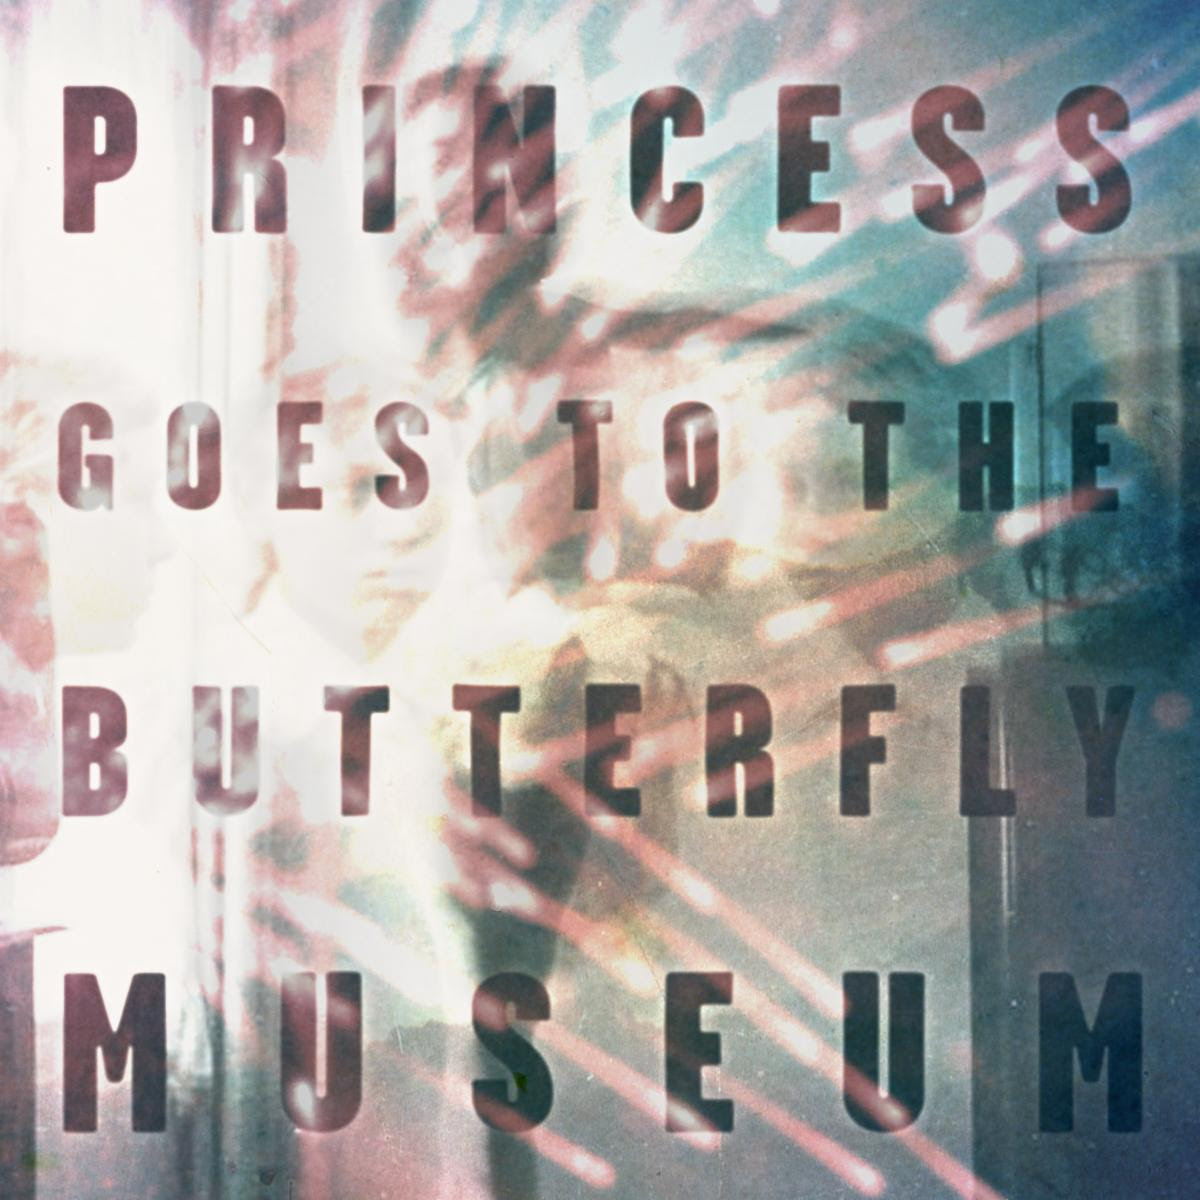 Princess Goes to the Butterfly MuseumArtwork ep stream